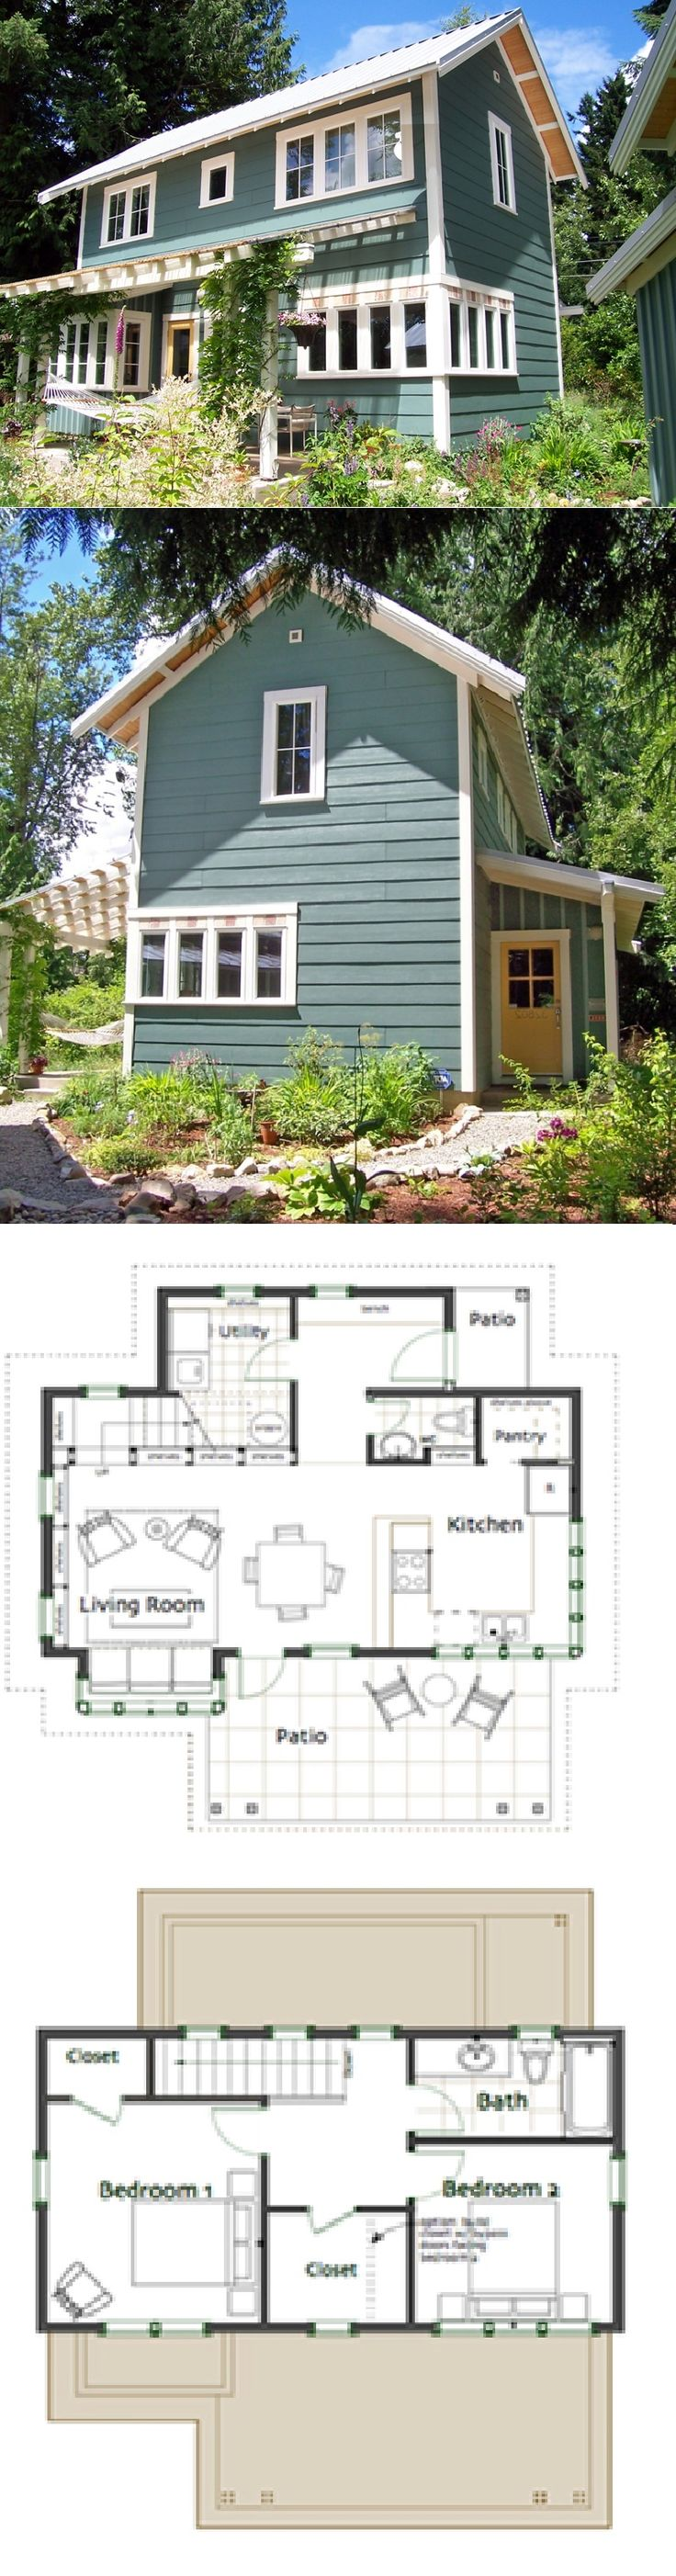 find this pin and more on tiny house plans - Small House Ideas